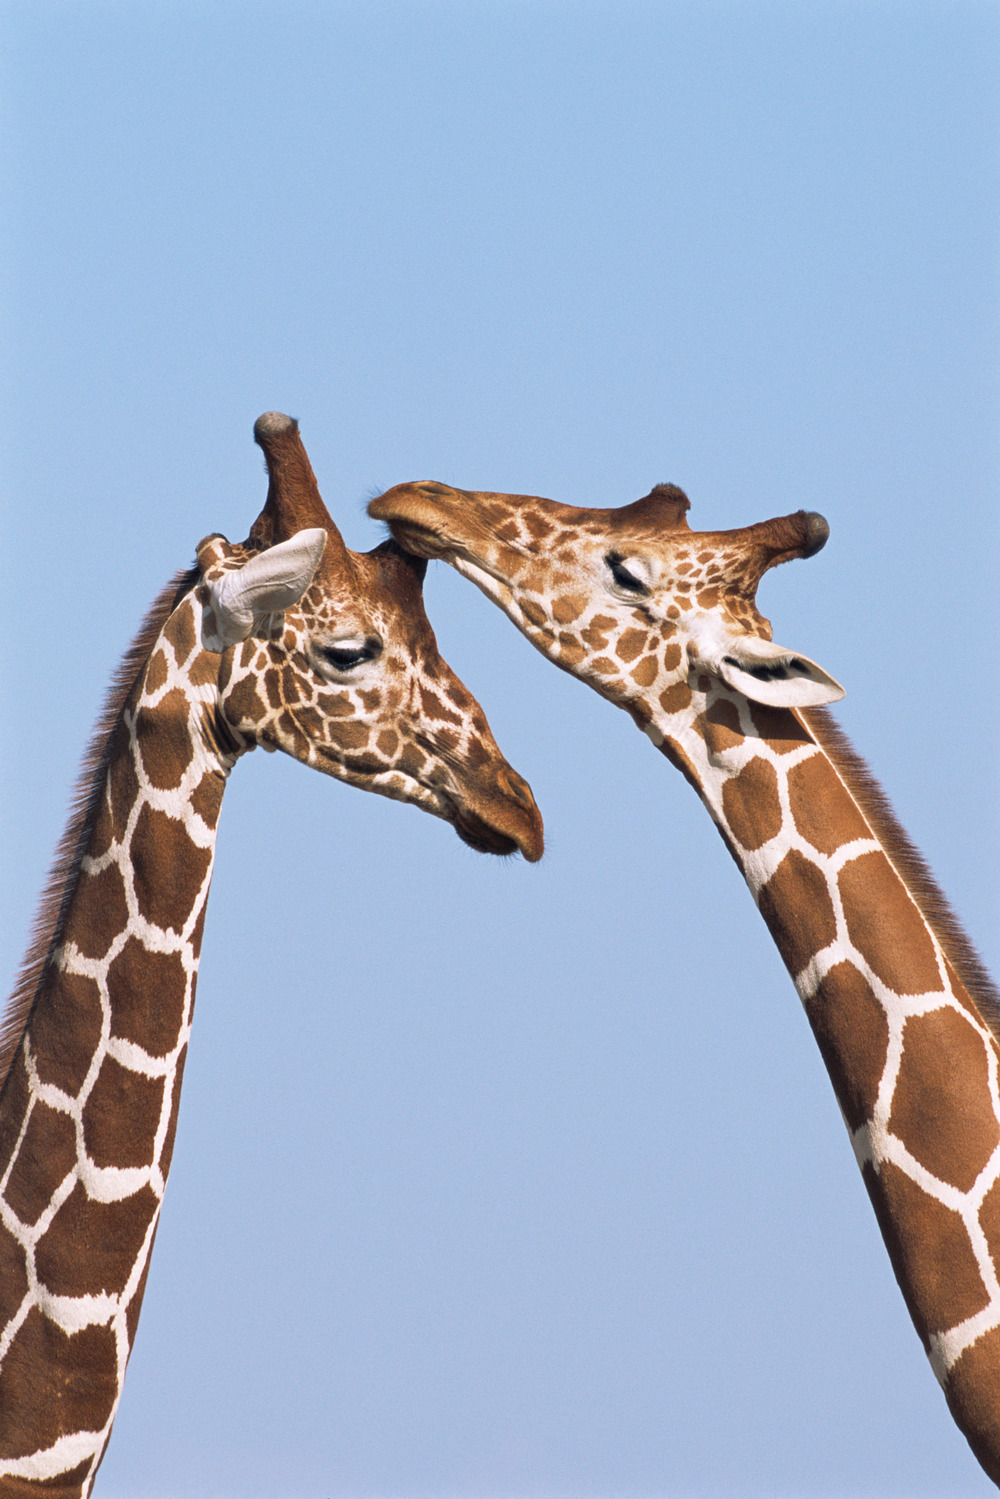 Reticulated giraffes bonding, Samburu National Reserve, Kenya